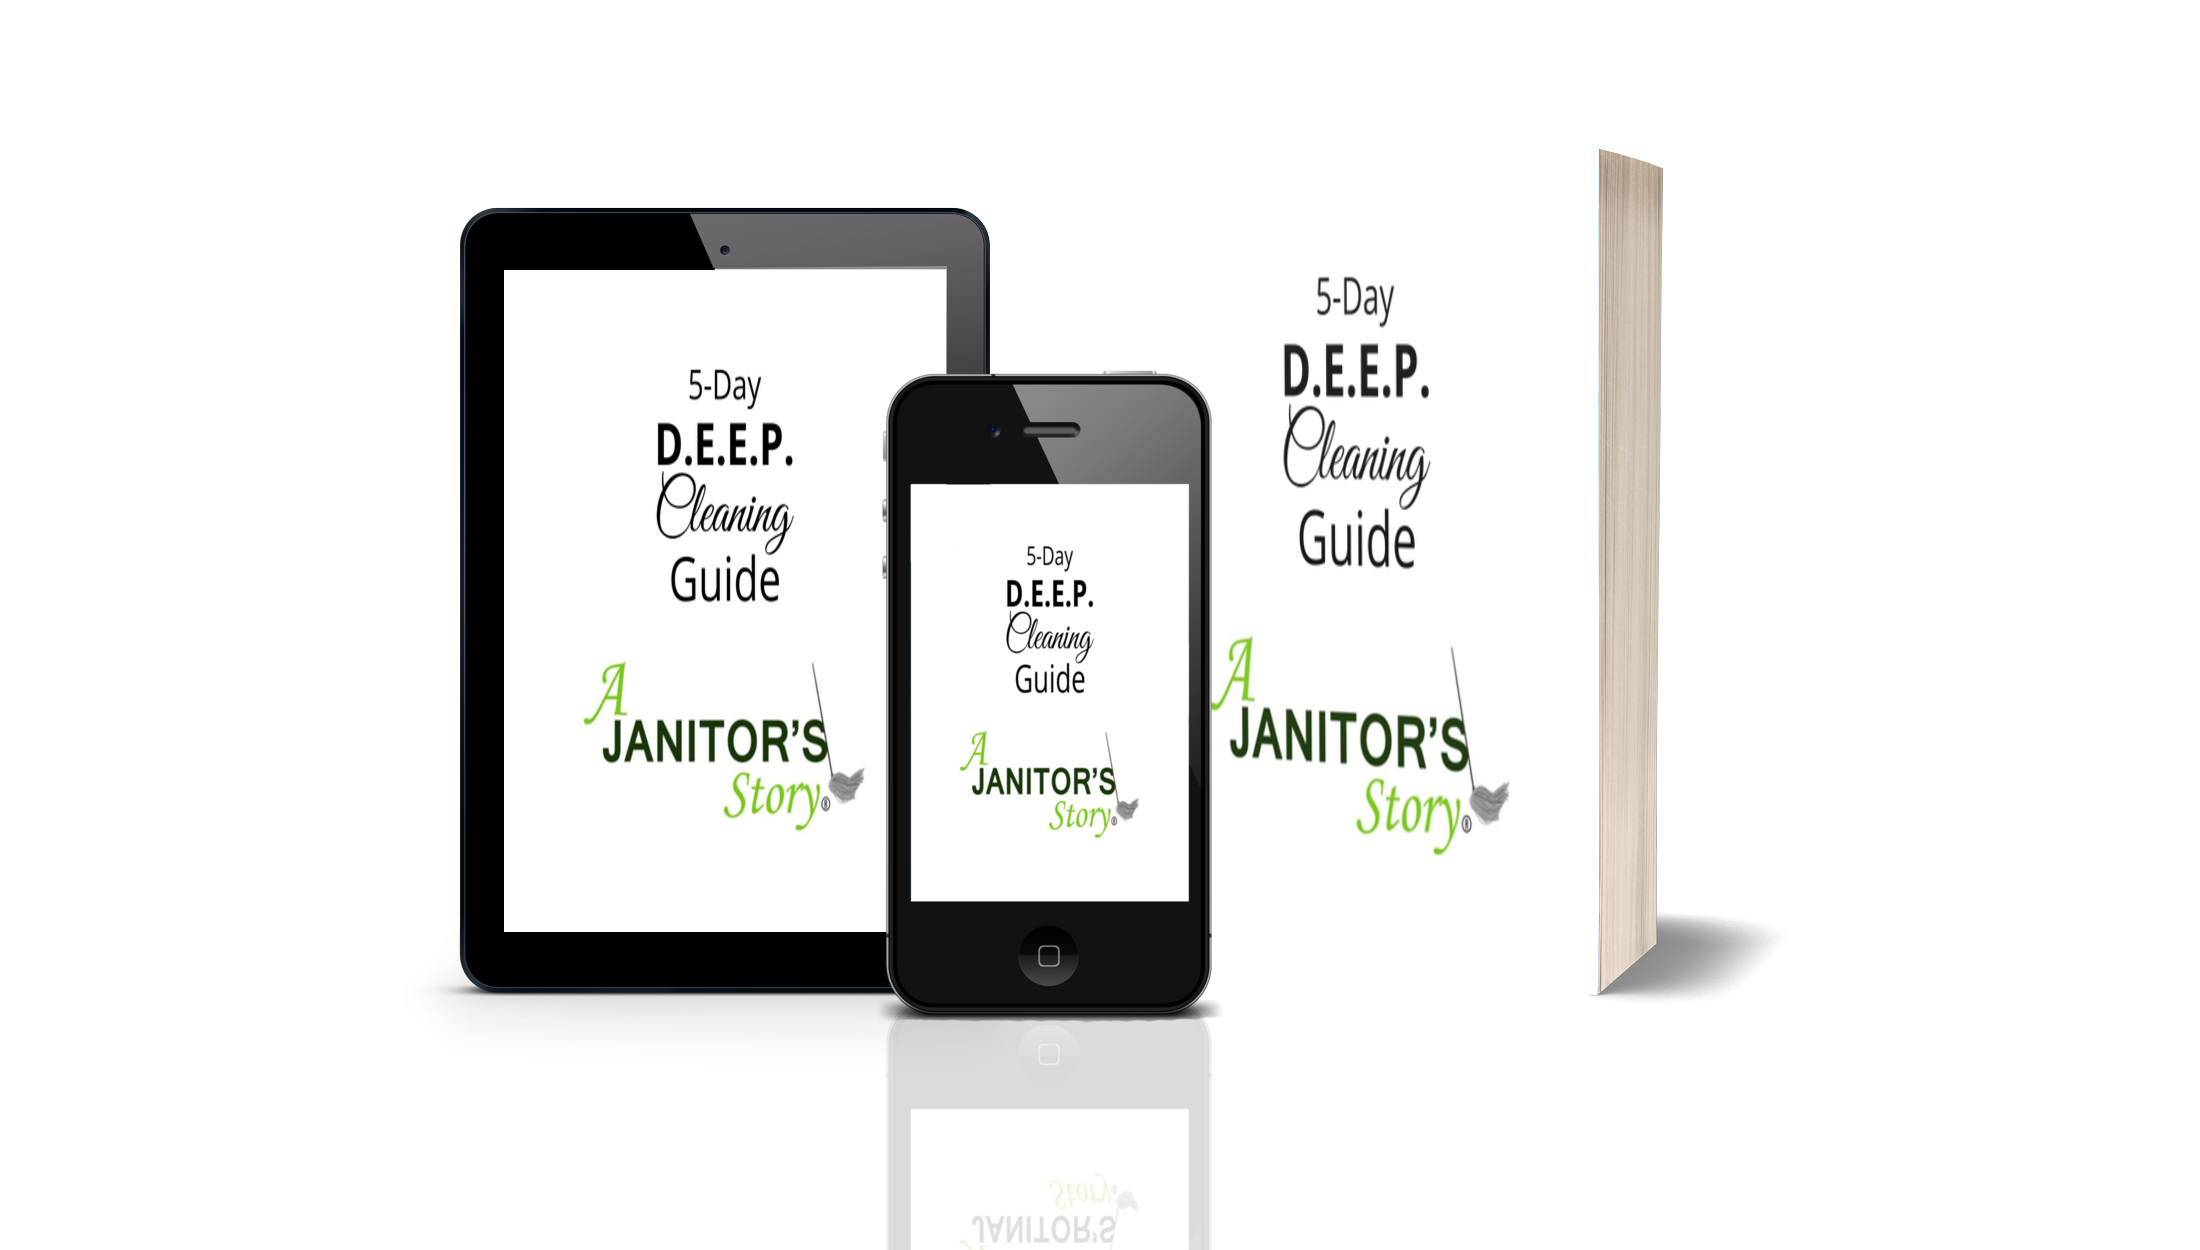 Deep cleaning guidebook on mobile, book, and tablet